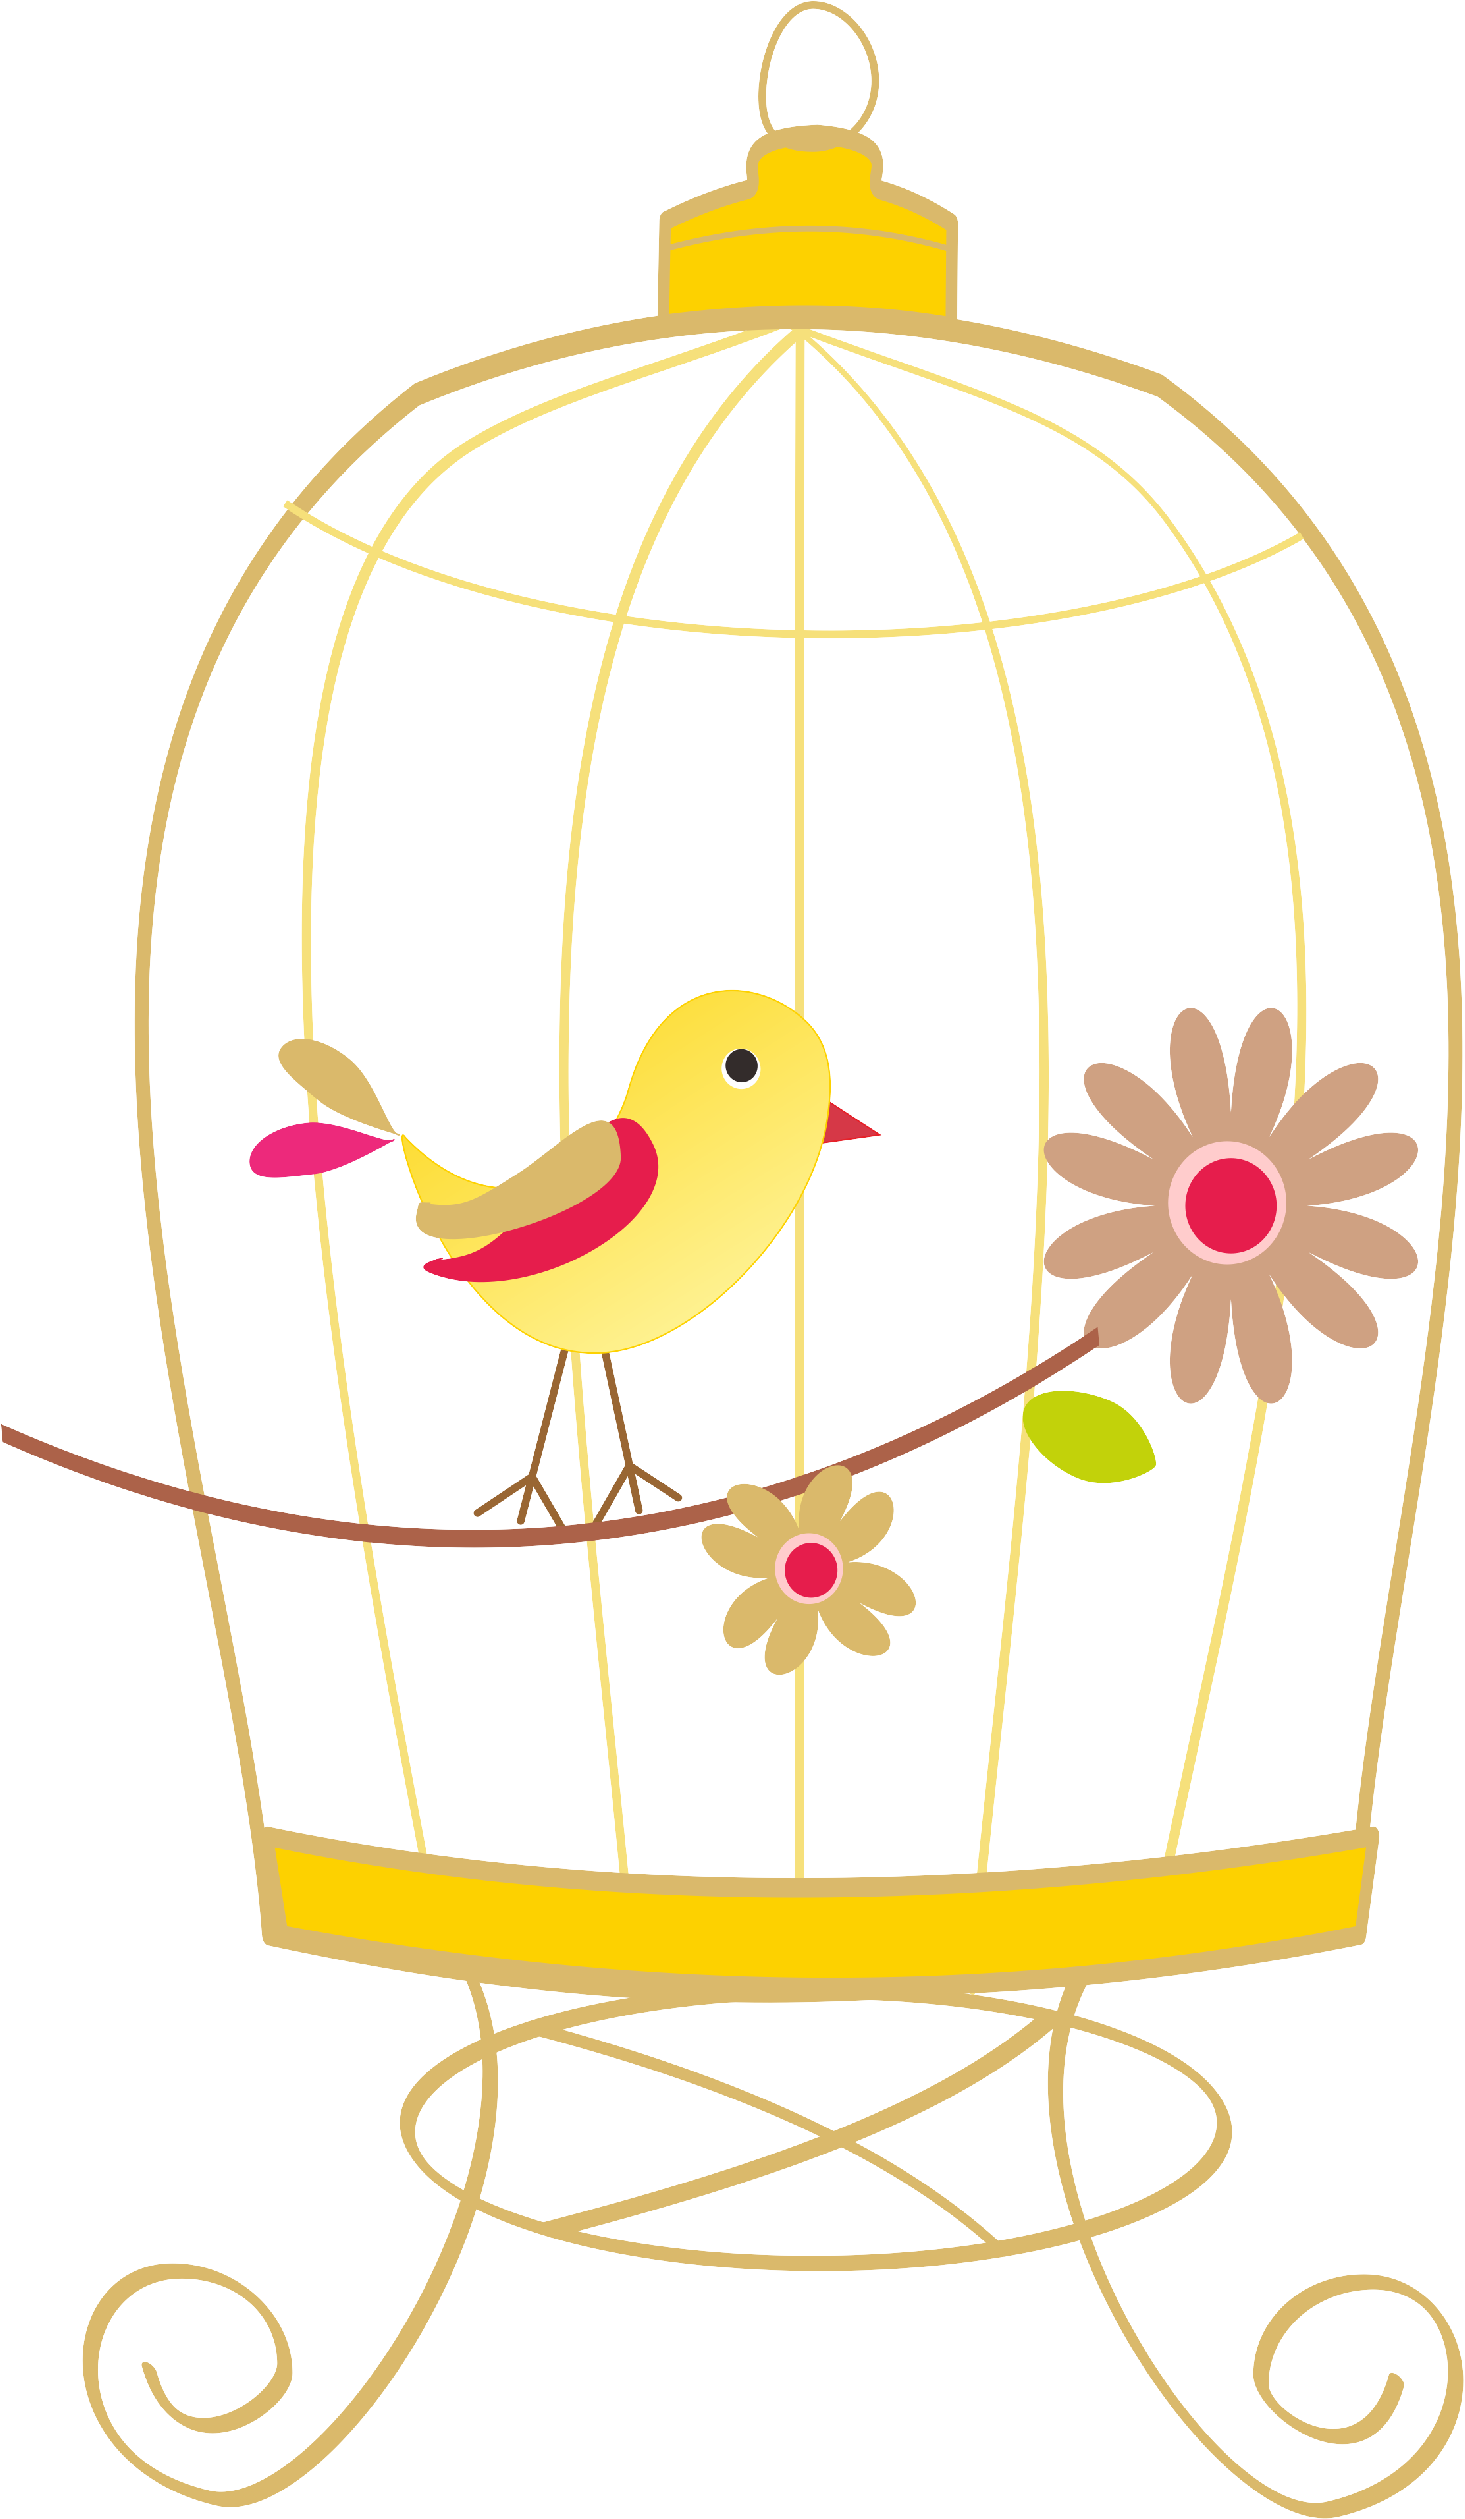 graphic free Cage clipart sad. Index of images birdcagepng.